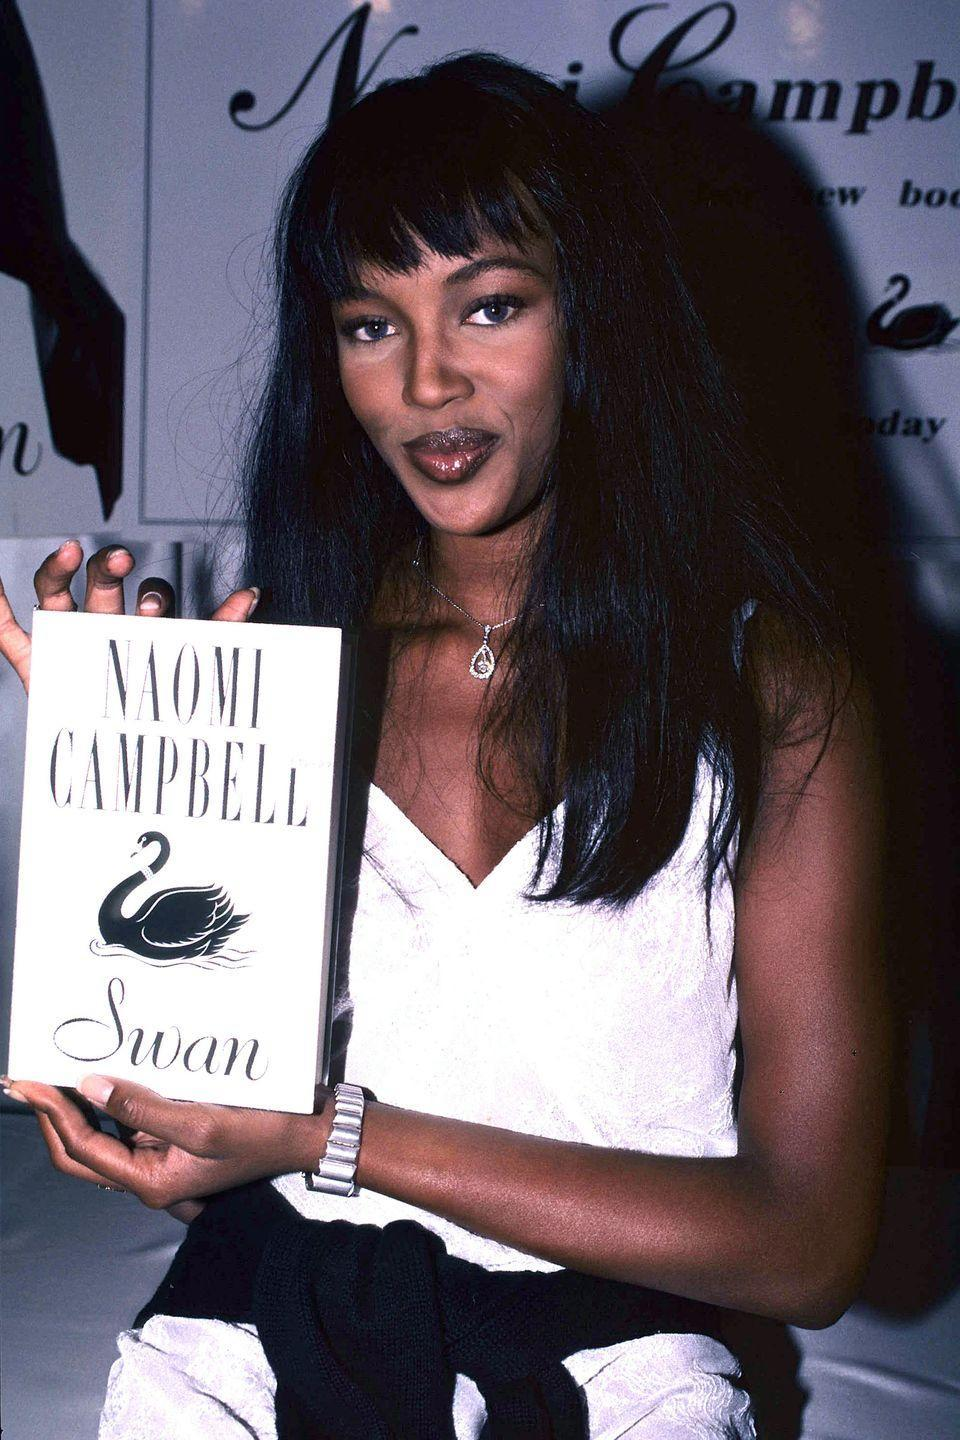 "<p>With the release of Naomi Campbell's first (and only) novel <em>Swan, </em>the buzz came with rumors that the international supermodel maybe wasn't the only person who had penned the story of the world's most successful supermodel who is looking to appoint her successor before she retires. </p><p>According to the <em><a href=""https://www.independent.co.uk/arts-entertainment/books/features/a-week-in-books-the-art-of-ghostwriting-6111862.html"" rel=""nofollow noopener"" target=""_blank"" data-ylk=""slk:Independent"" class=""link rapid-noclick-resp"">Independent</a></em>, it quickly emerged that most of <em>Swan</em> was written by Naomi's editor, Caroline Upcher, which led the <em>Making the Cut</em> star's agent to state that while Caroline may have been the ""writer"" or the book, Naomi was the true ""author.""</p><p>However, the whole affair worked out for both Naomi and Caroline. Caroline went on to write her own novels under her own name and her own pen name. Naomi, of course, continued to slay on runways and magazine covers around the world. </p><p><a class=""link rapid-noclick-resp"" href=""https://www.amazon.com/Swan-Naomi-Campbell/dp/074932208X?tag=syn-yahoo-20&ascsubtag=%5Bartid%7C2139.g.34385633%5Bsrc%7Cyahoo-us"" rel=""nofollow noopener"" target=""_blank"" data-ylk=""slk:Buy the Book"">Buy the Book</a></p>"